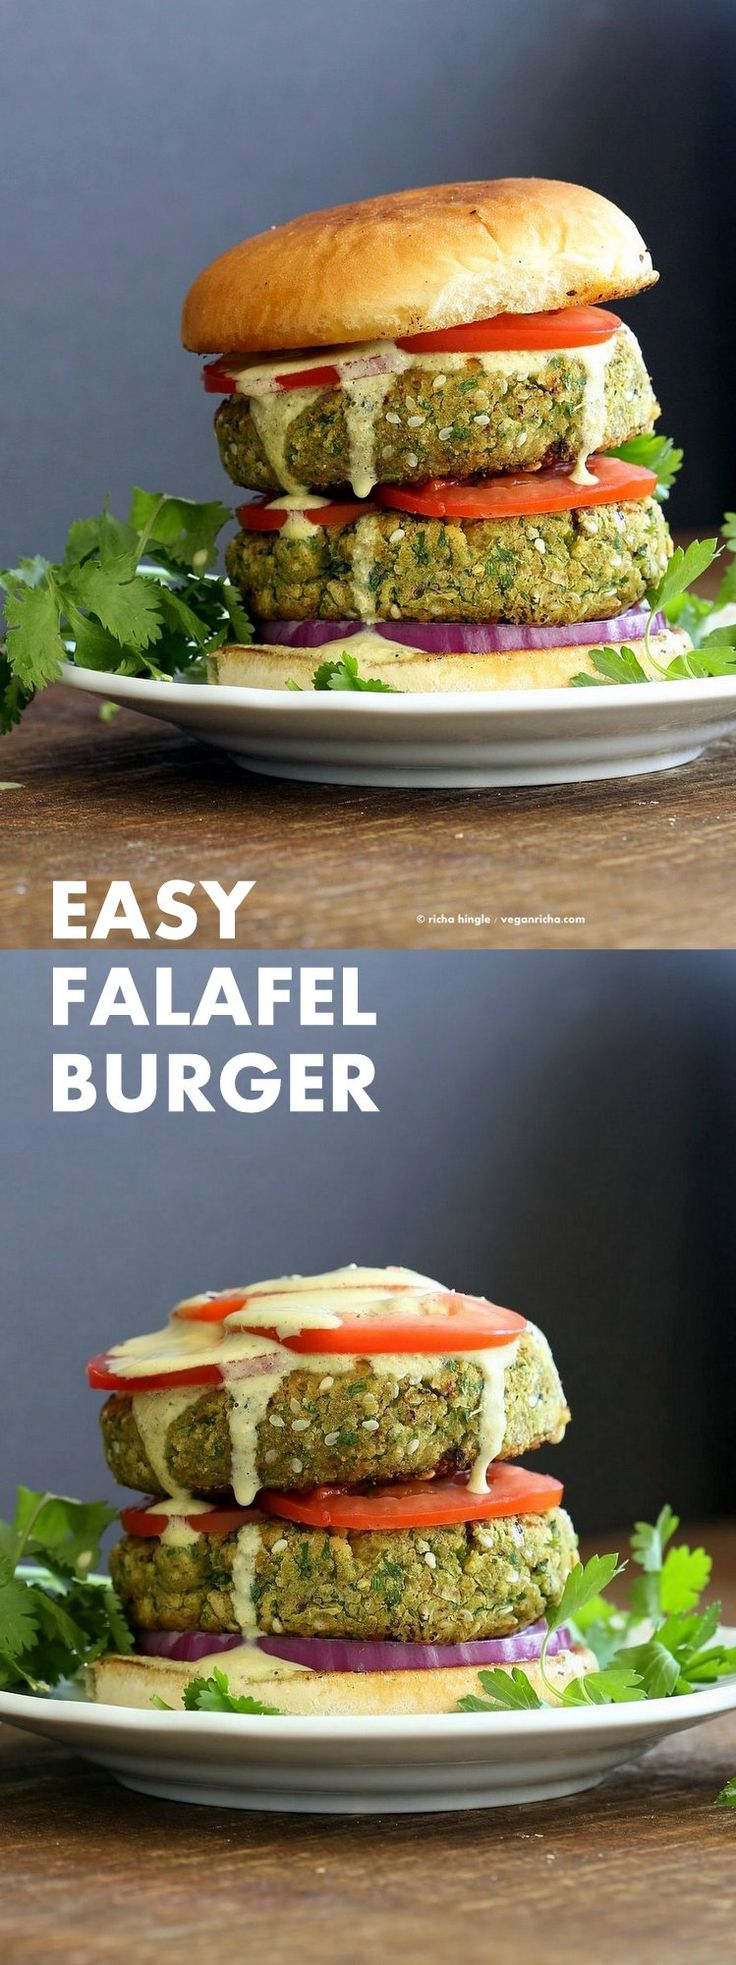 Easy Vegan Falafel Burger. Chickpea patties (OMIT all spices except garlic and cilantro, additionally OMIT sesame and oil, substitute citric acid for lemon flavor, and no sauce or toppings except lettuce/ mung bean sprouts for PHASE 1 Exzema Diet)